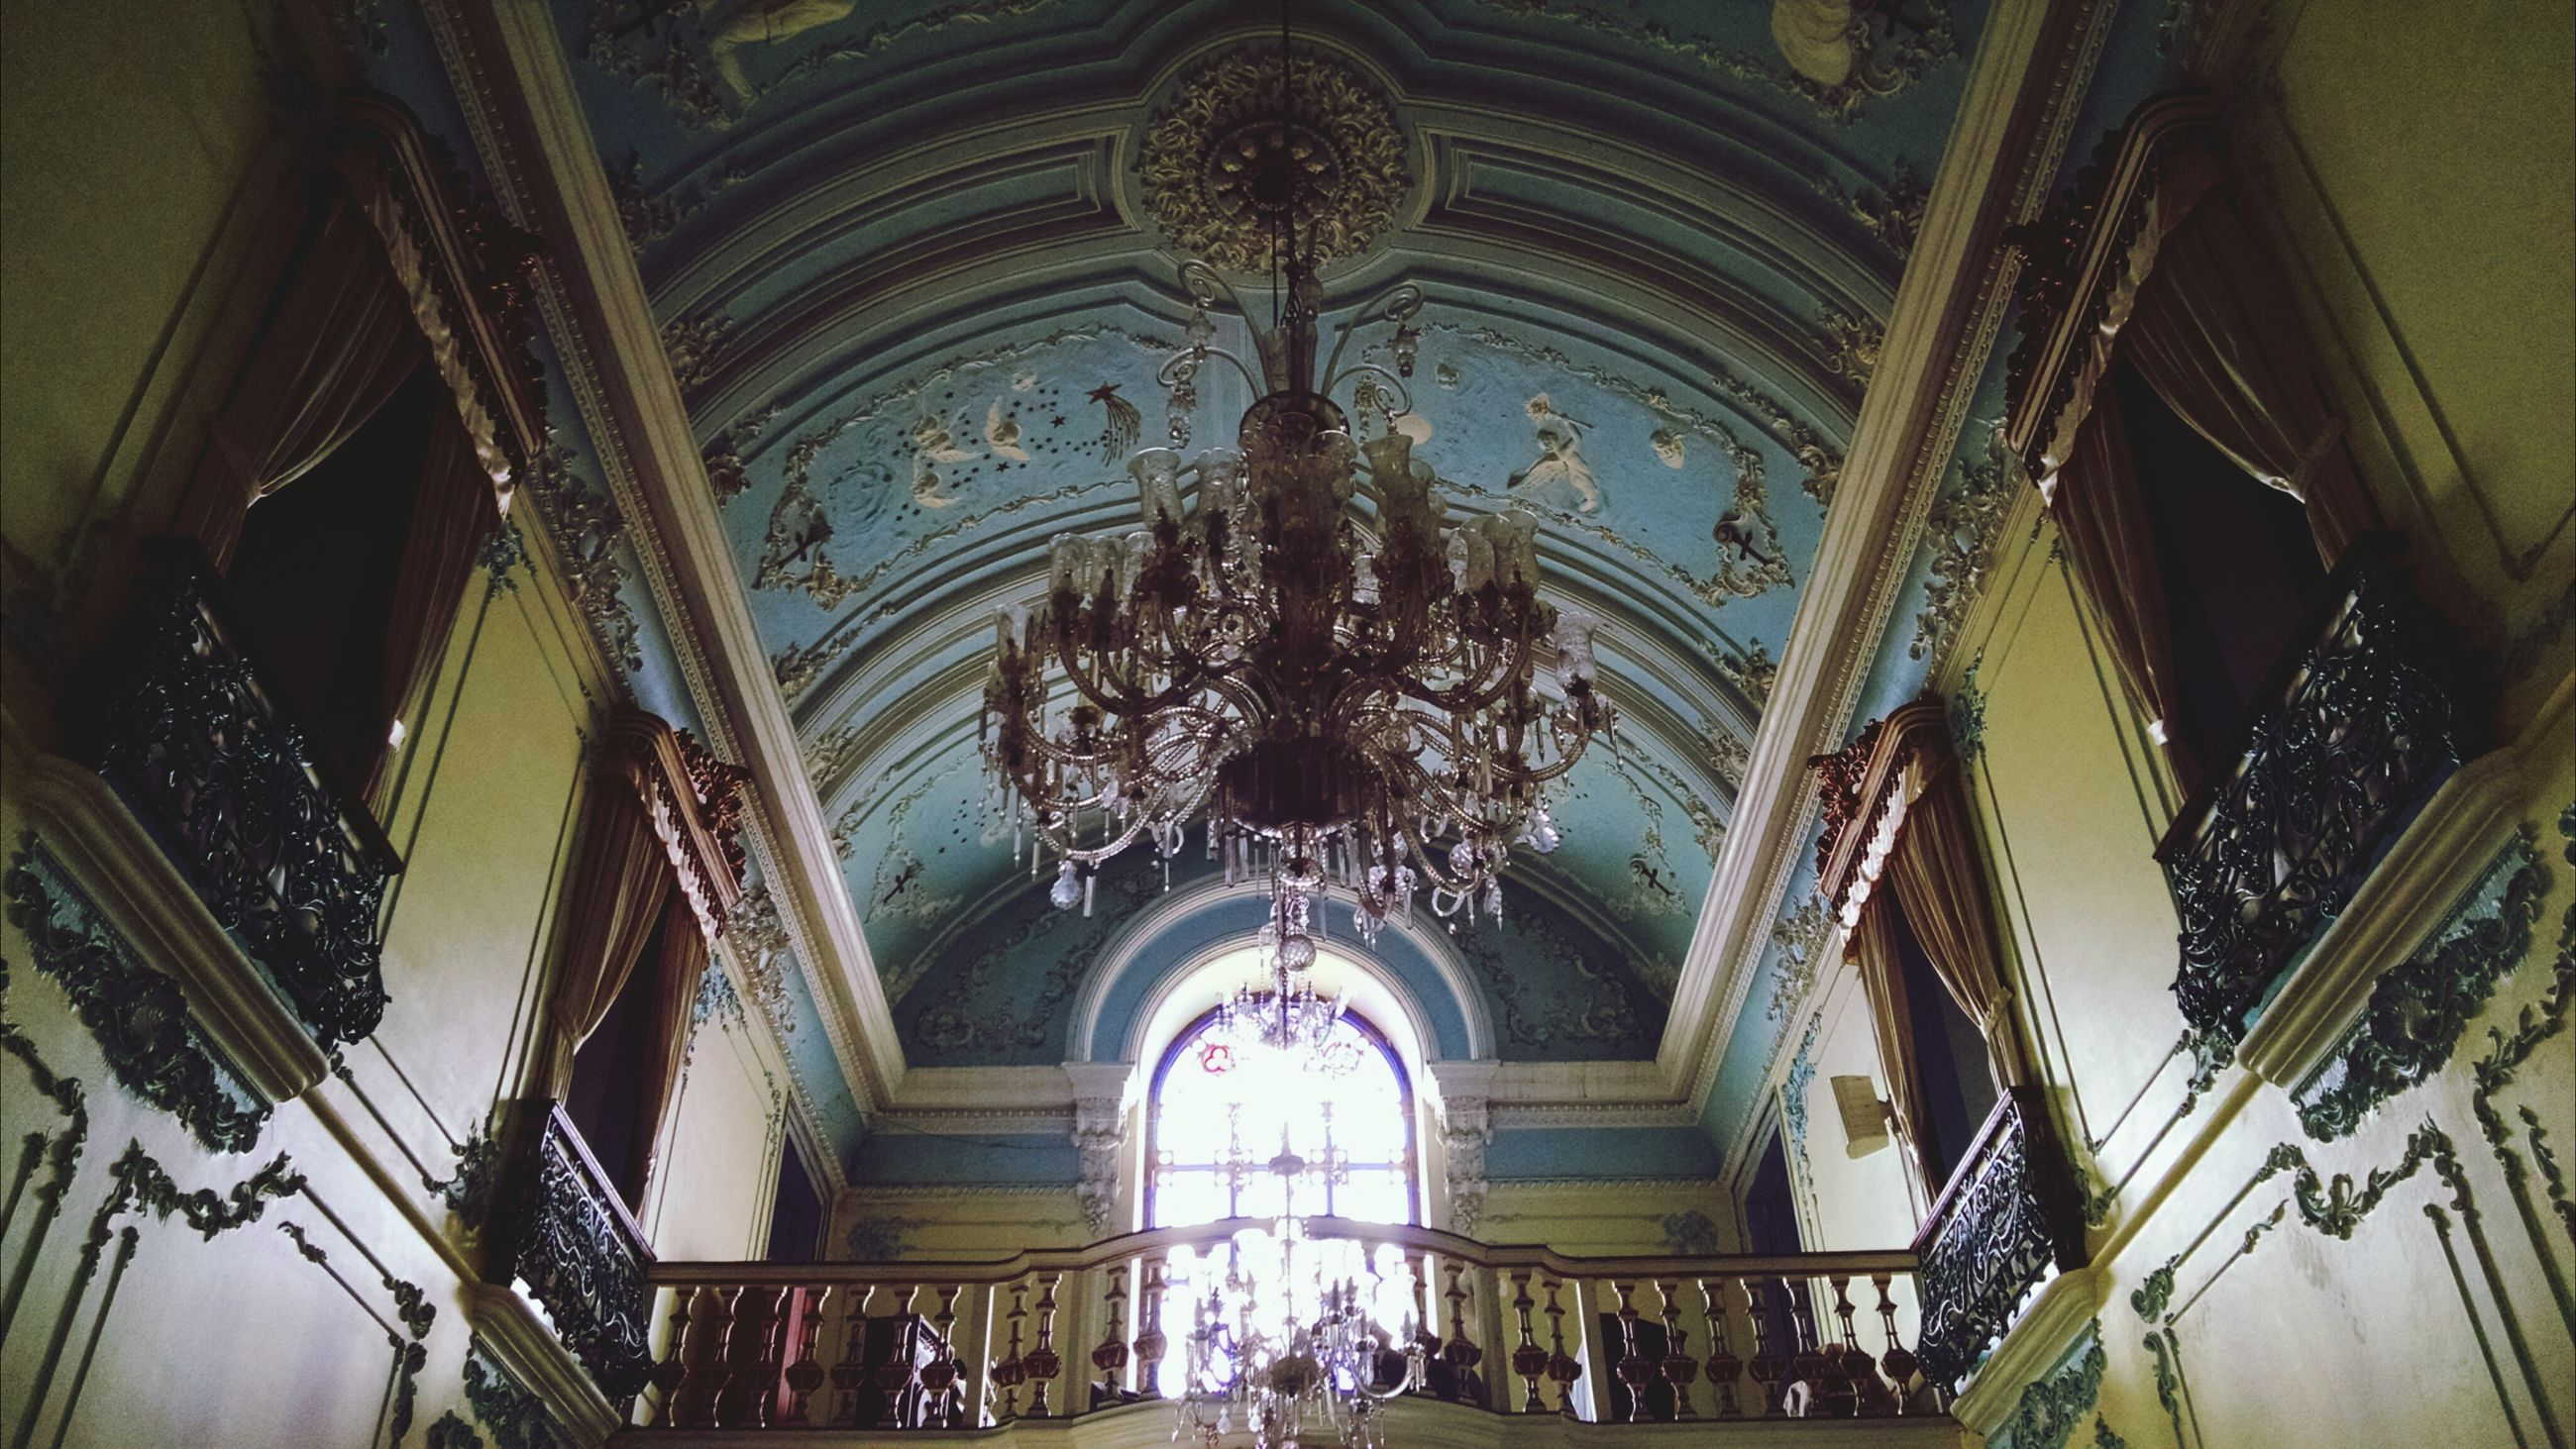 indoors, ceiling, architecture, built structure, low angle view, place of worship, arch, famous place, travel destinations, tourism, religion, illuminated, spirituality, person, large group of people, travel, men, interior, chandelier